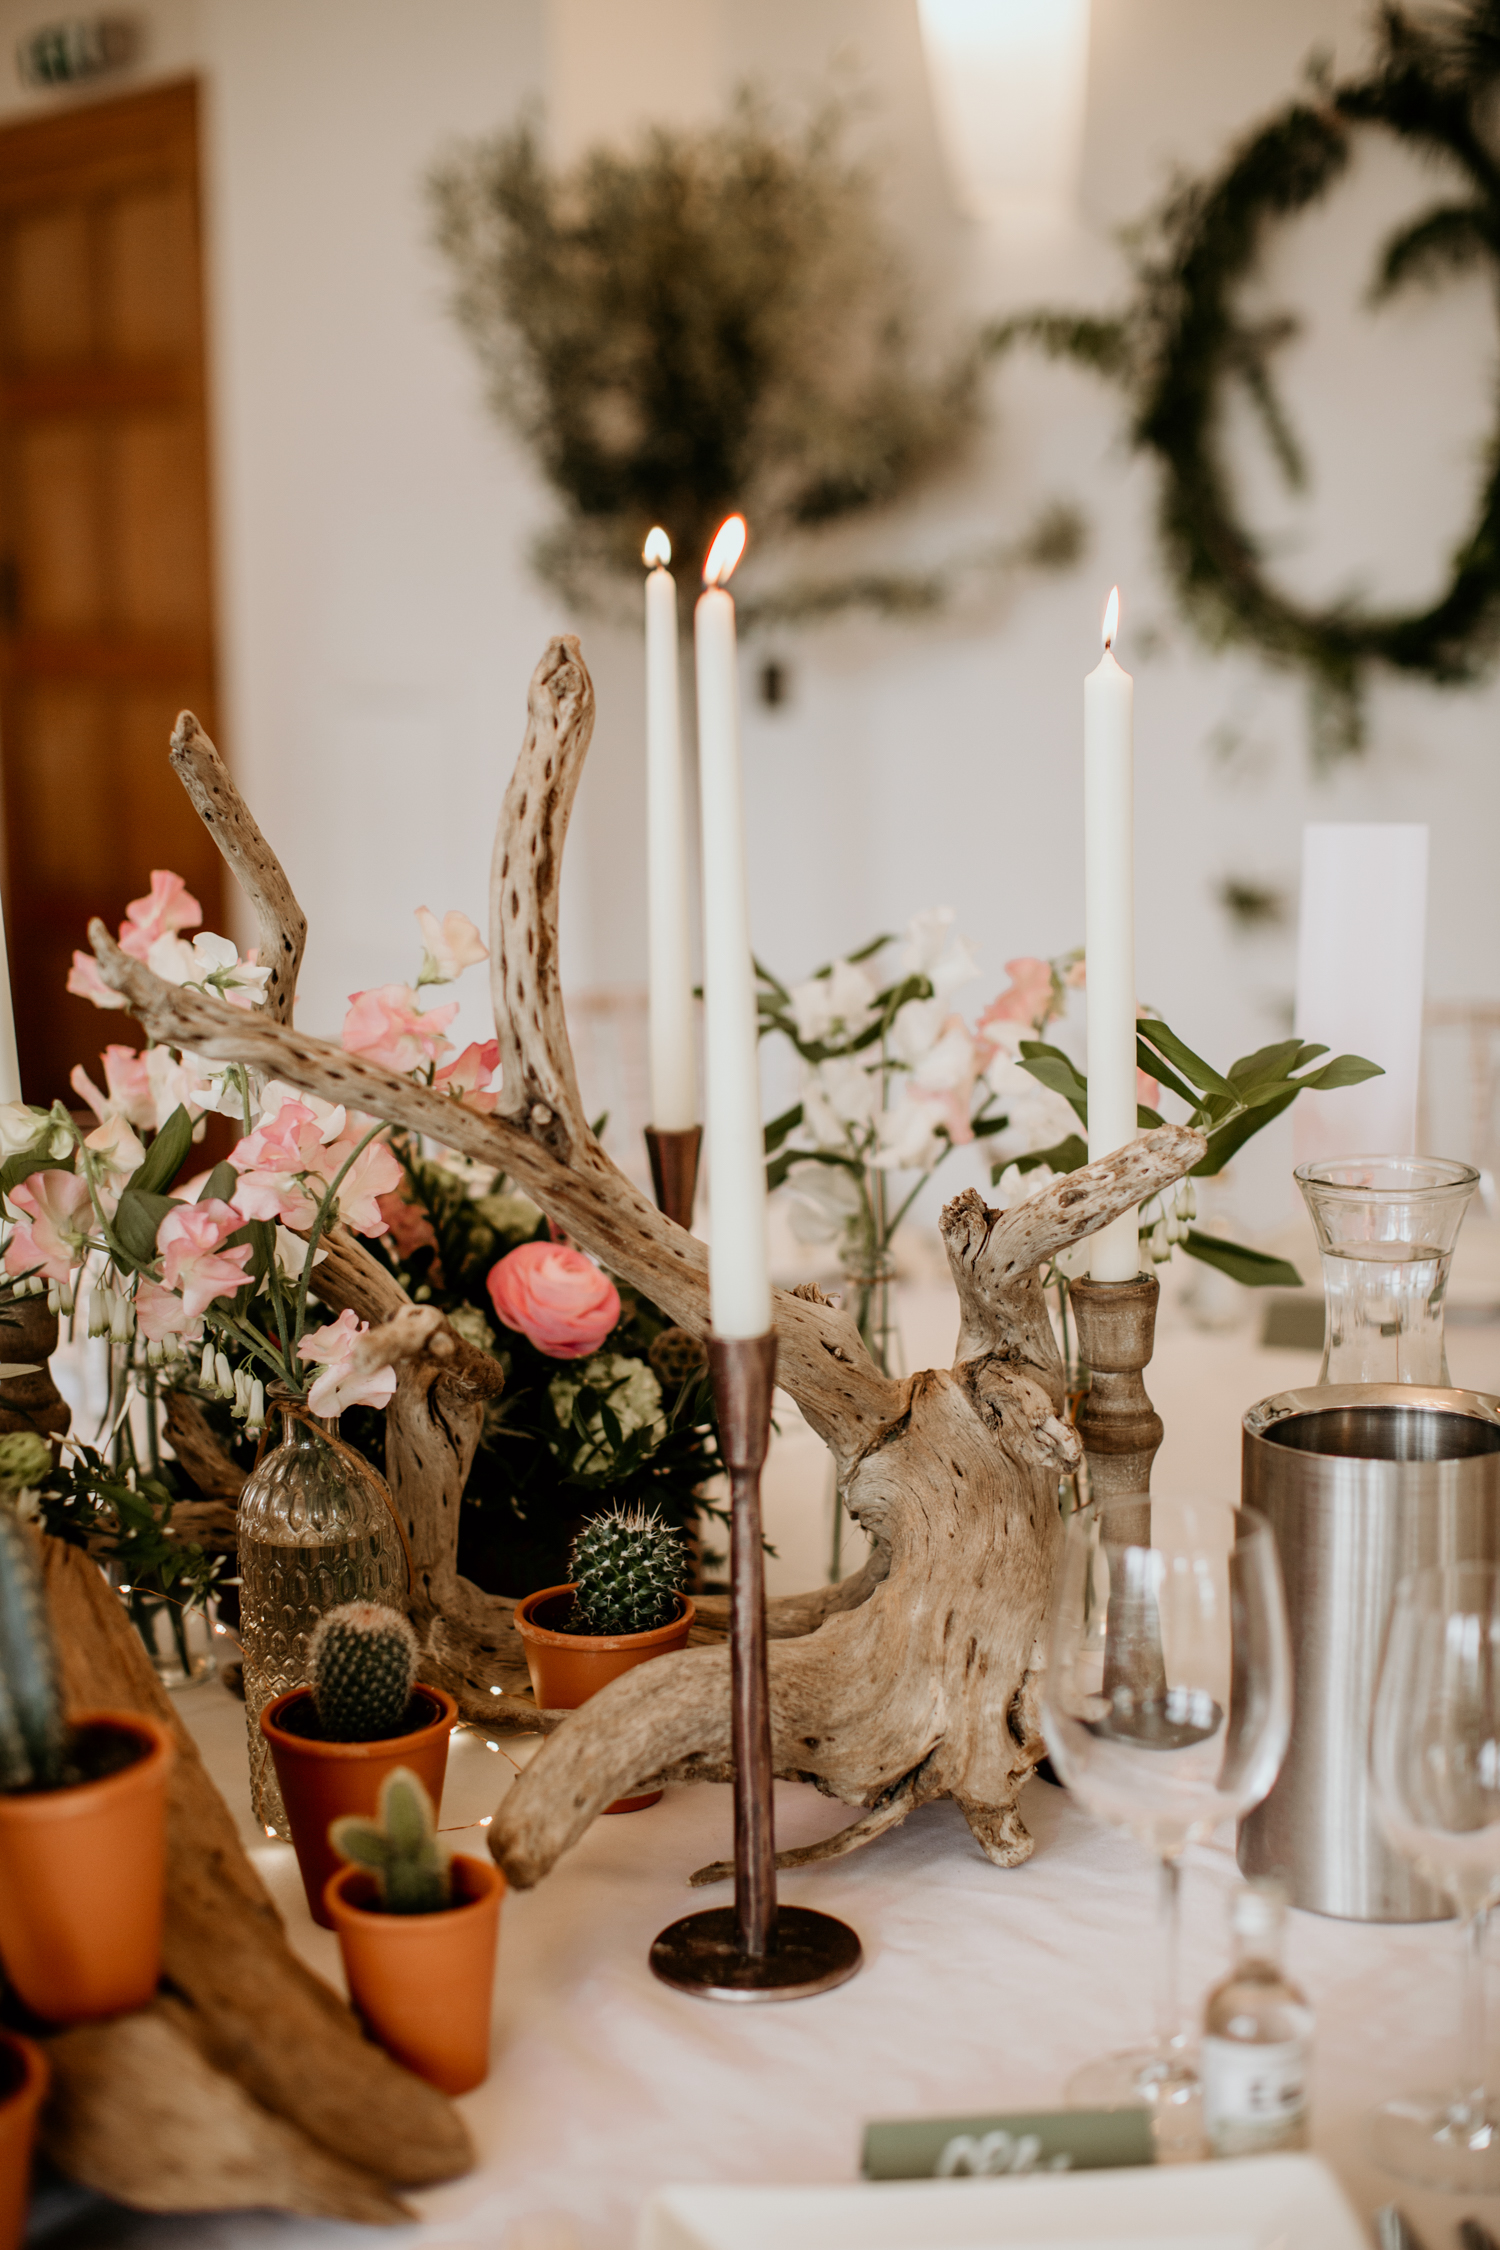 wedding decor with copper candles and drift wood on top table